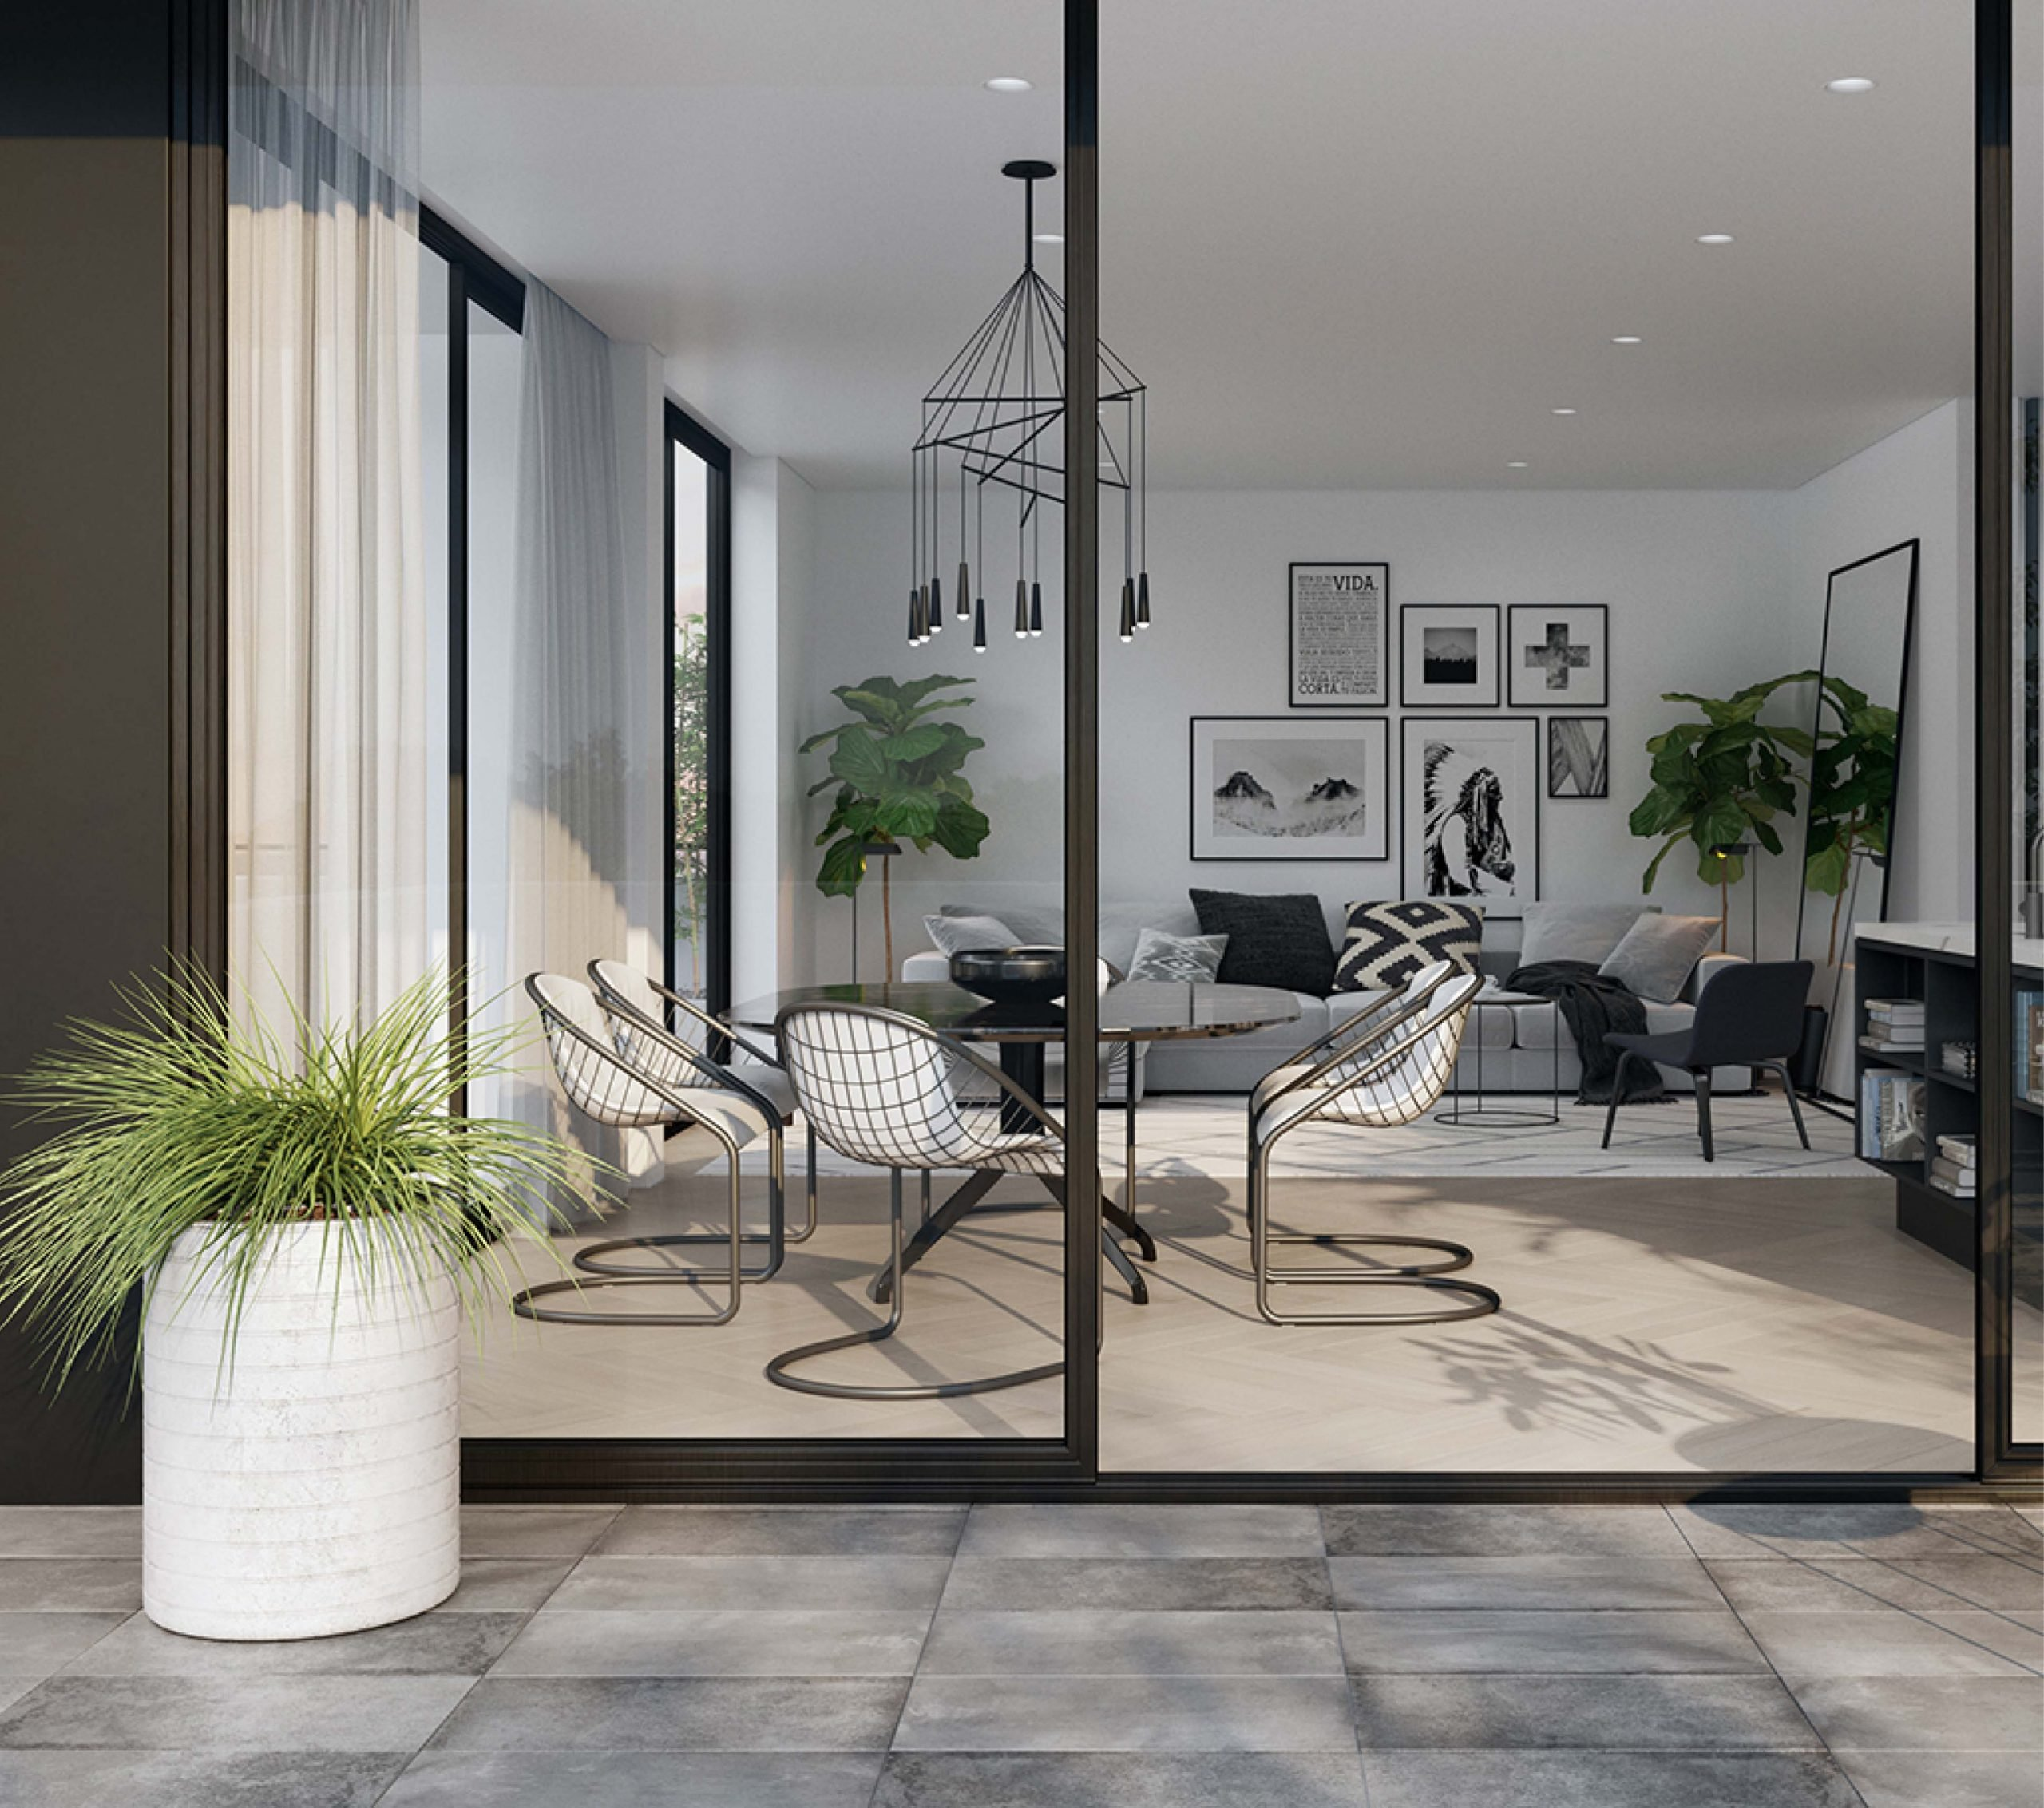 living room with black and white palette and painting on the wall